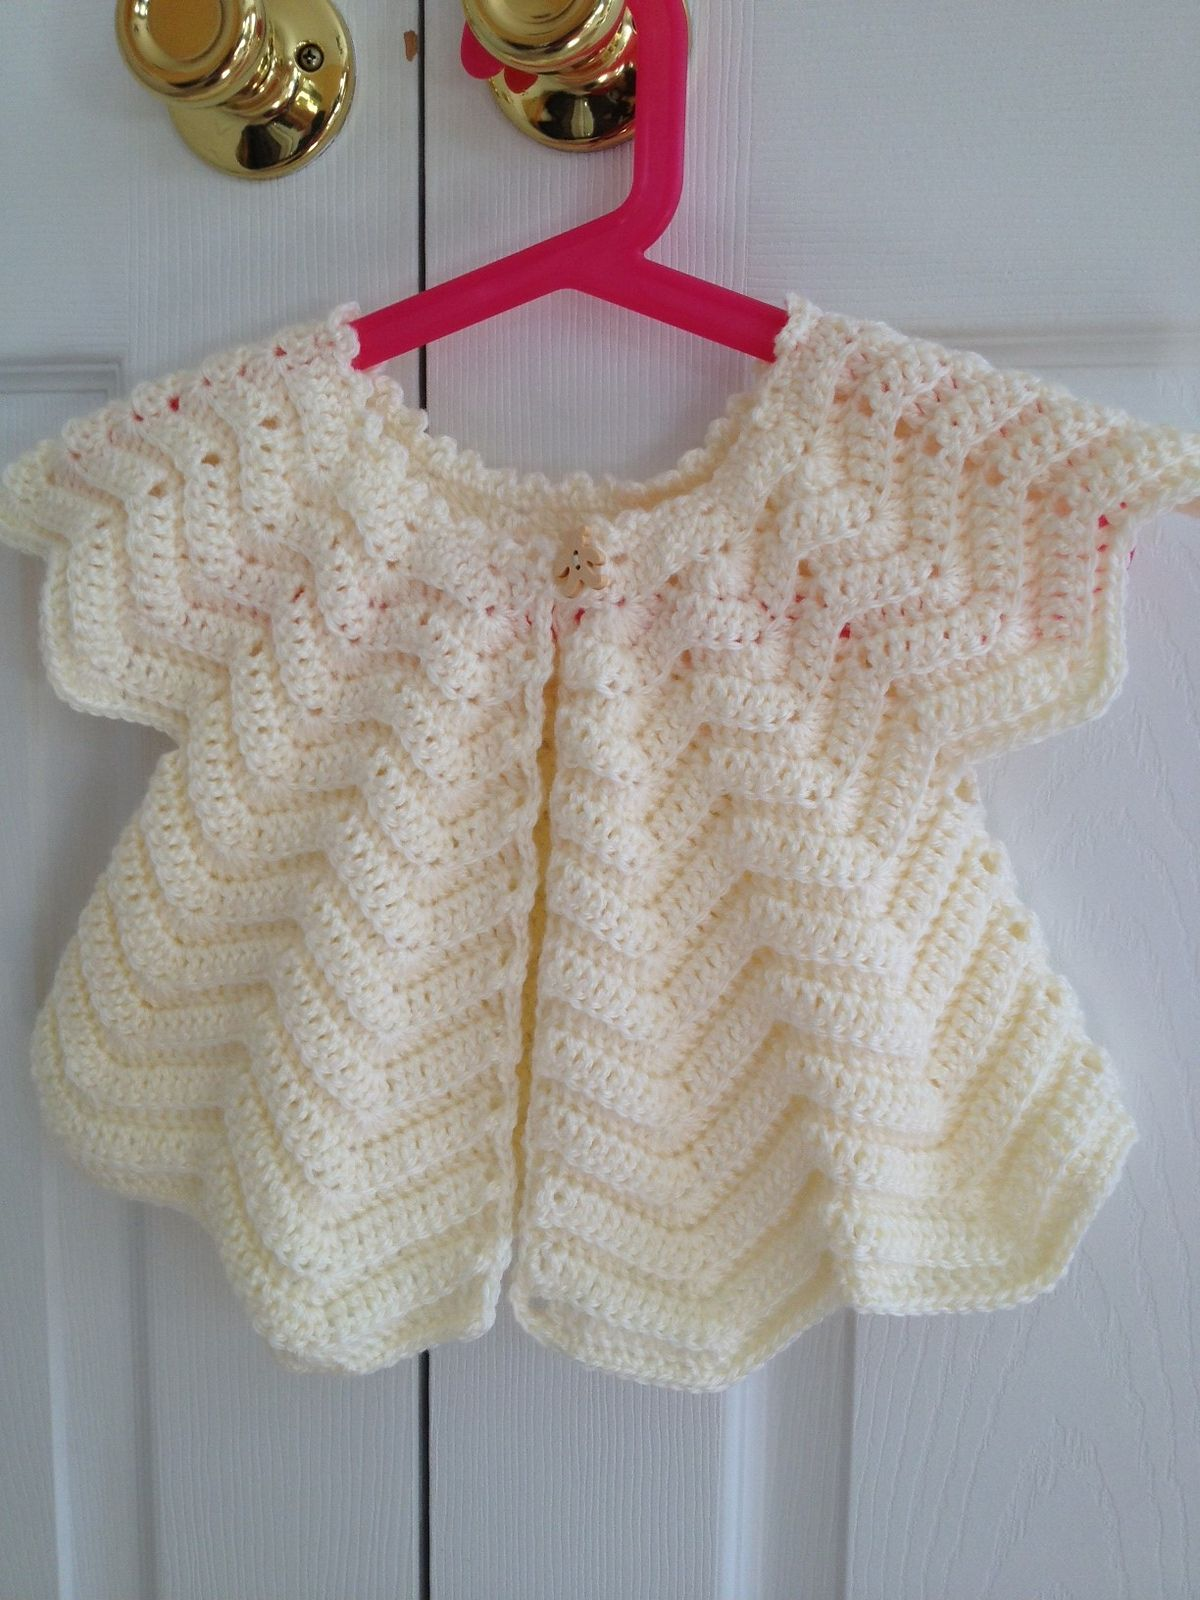 Ravelry emmys baby cardigan pattern by agnes chow zig zag monkey booboo crochet emmys baby cardigan free pattern 12 month old bankloansurffo Images